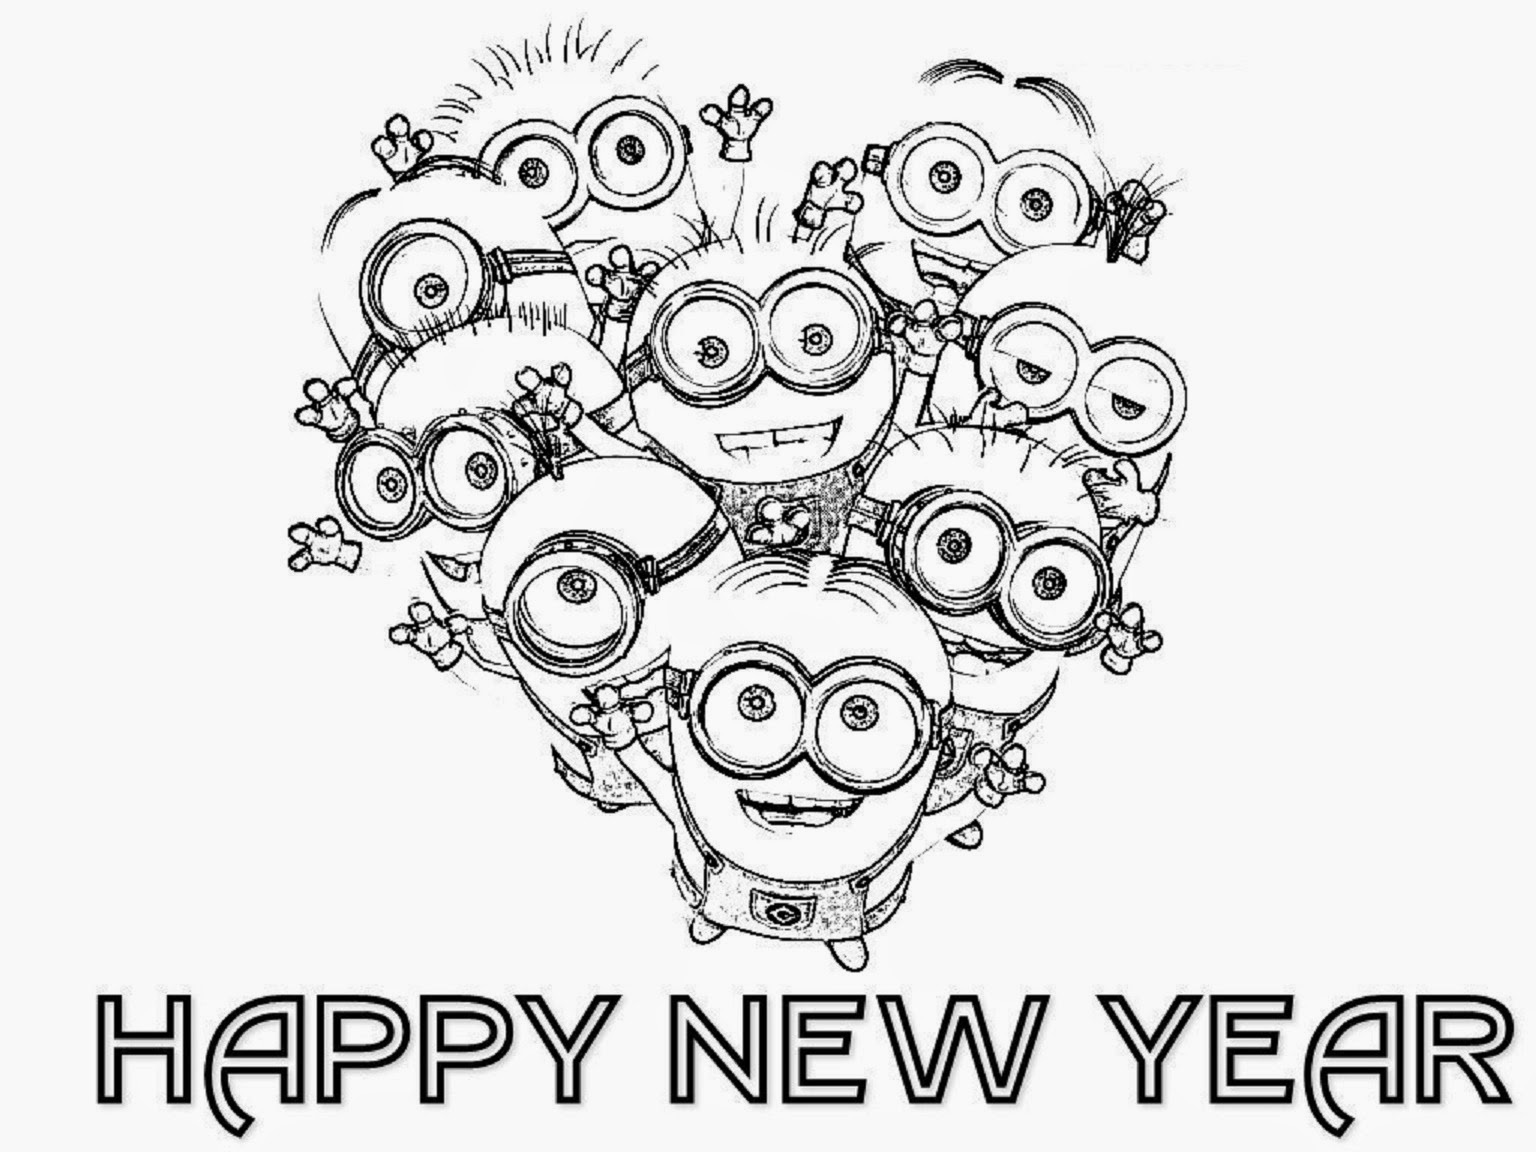 new year printable coloring pages - colour drawing free hd wallpapers happy new year 2015